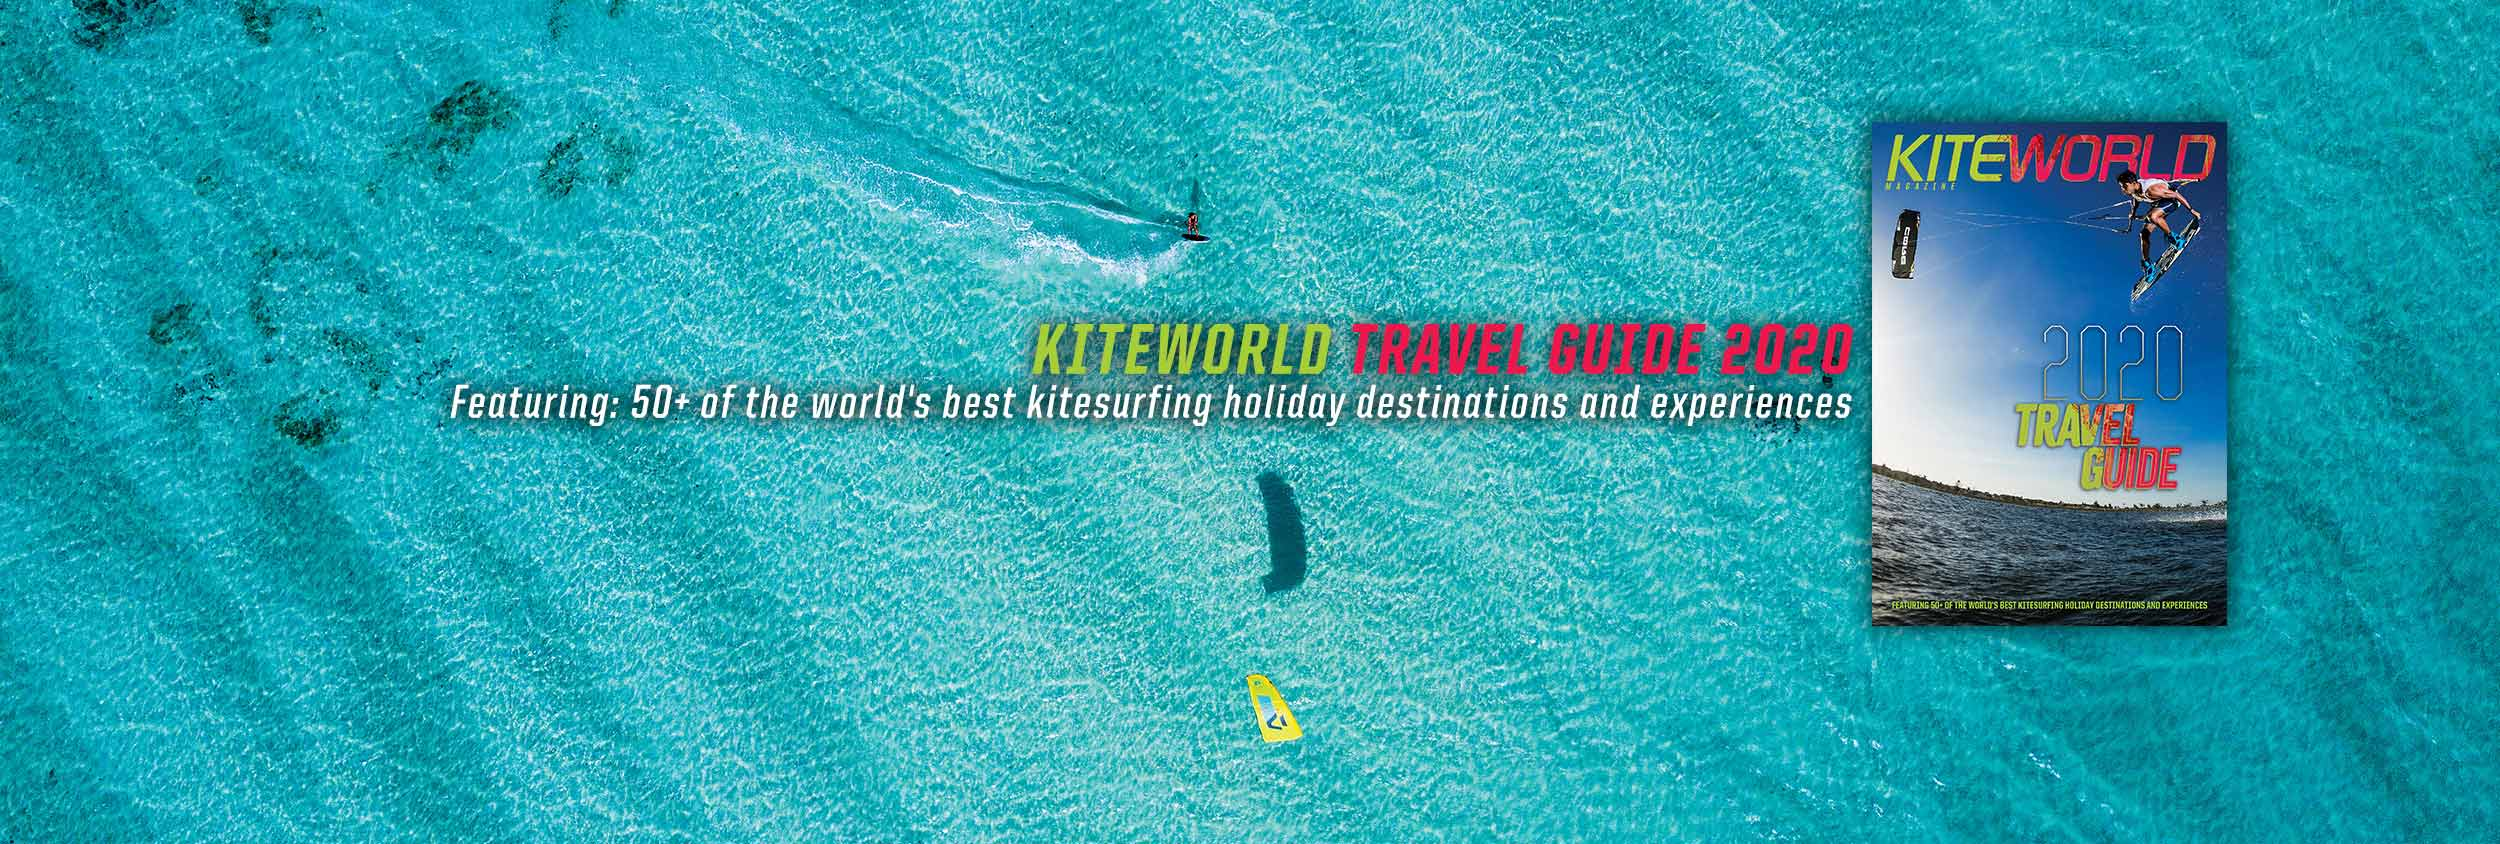 Kiteworld Travel Guide 2020